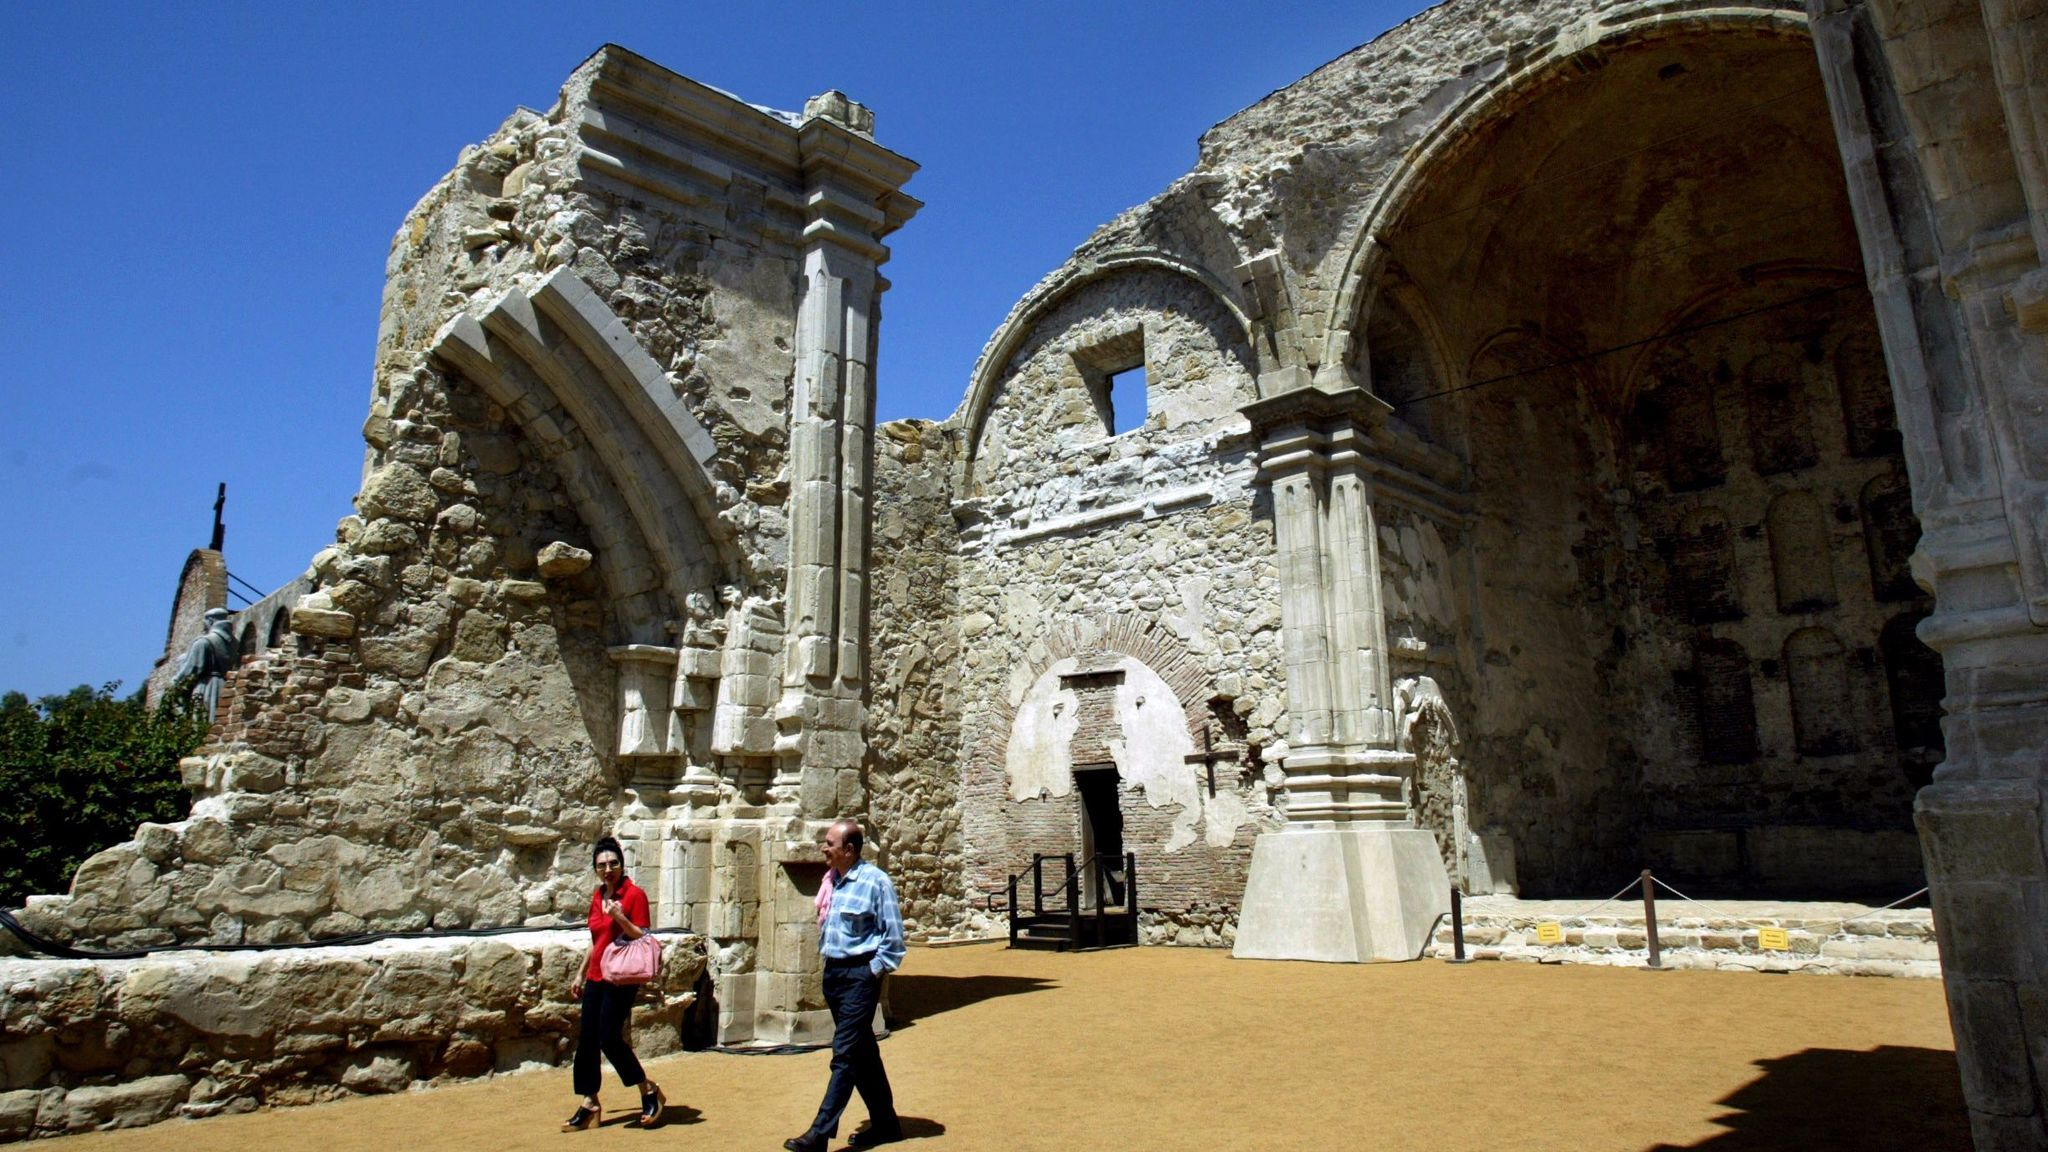 The Great Stone Church at Mission San Juan Capistrano was destroyed by a magnitude 7.5 earthquake in 1812, believed to have resulted from a joint rupture of the San Jacinto and San Andreas faults. More than 40 people attending Mass died.